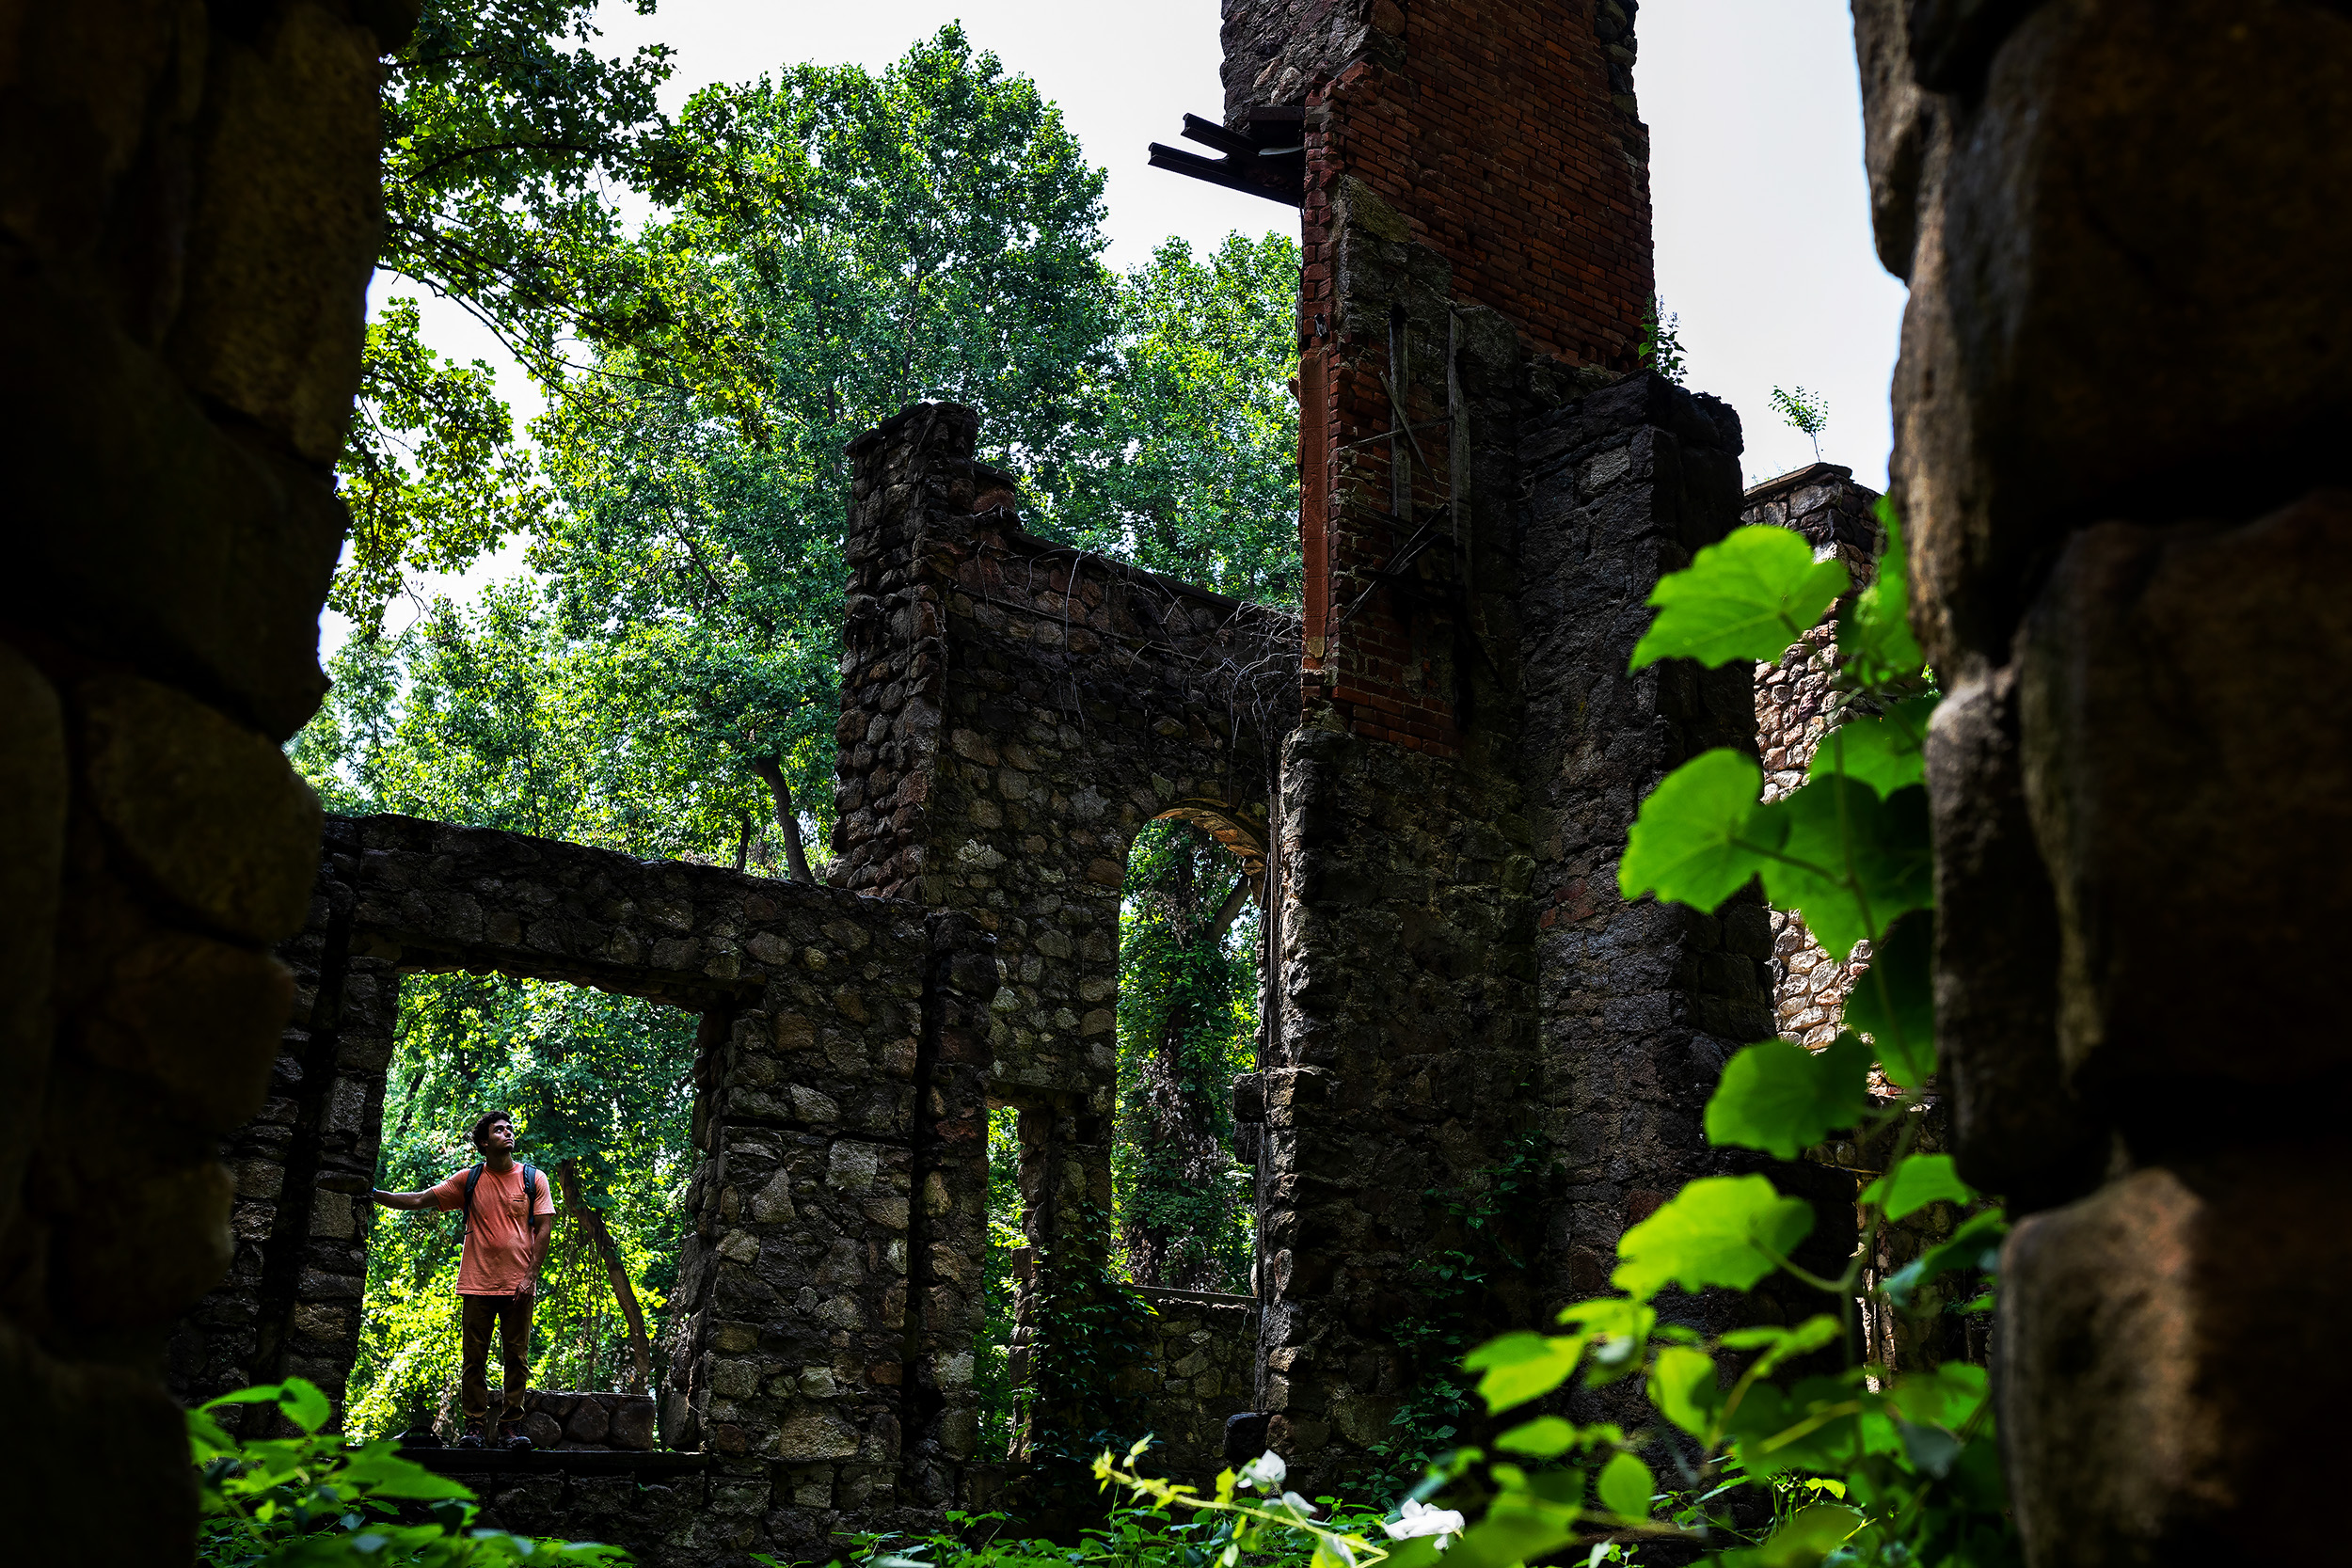 A visitor tours the old ruins of the Cornish Estate in Cold Spring, New York. In 1958, a fire destroyed most of the mansion leaving the Cornish's grand estate in ruins. Today those ruins are overgrown and gradually have been reclaimed by the forest.